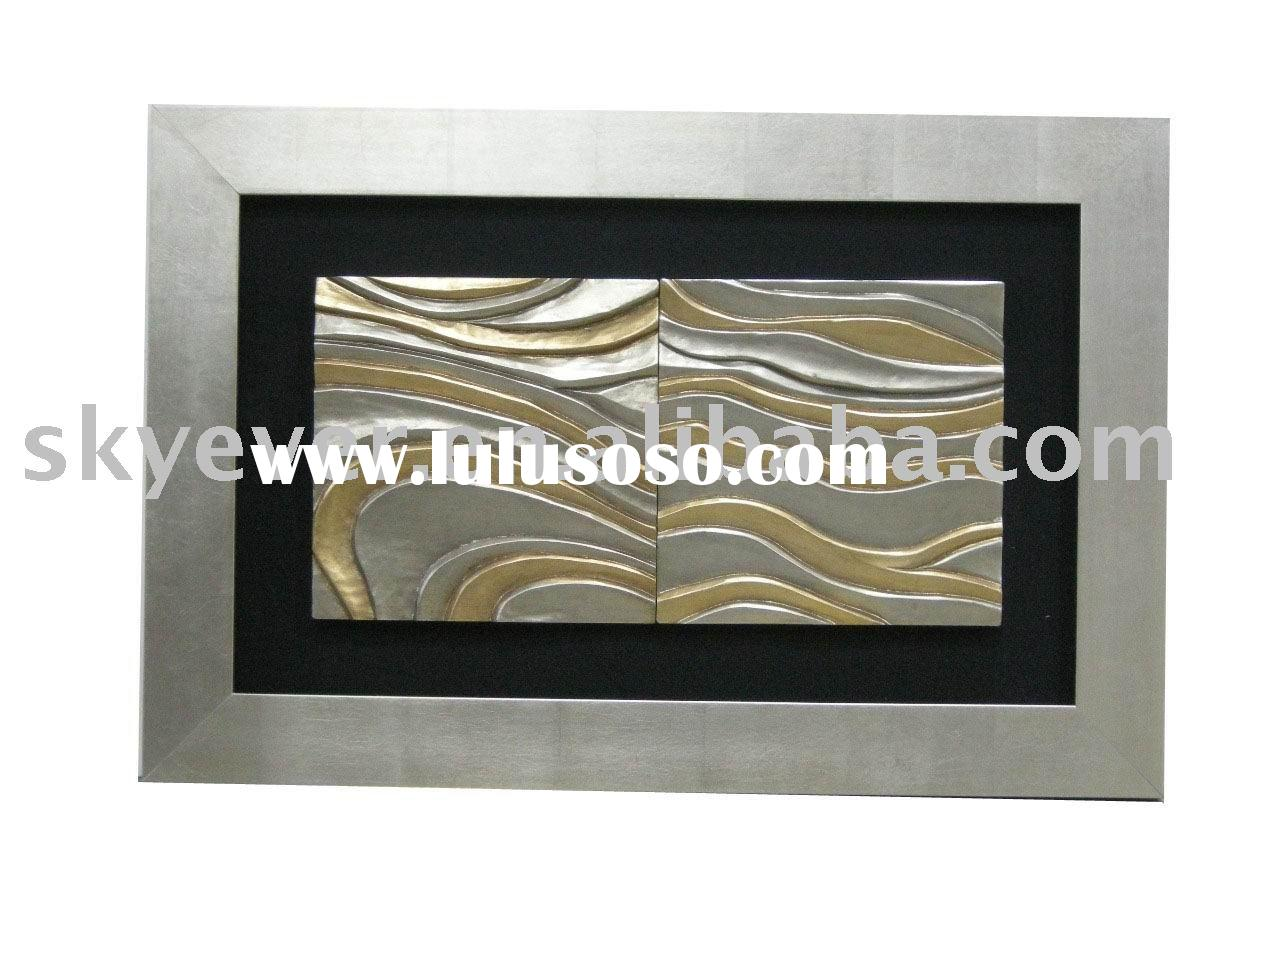 wall decoration made of framed wood carving shadow box